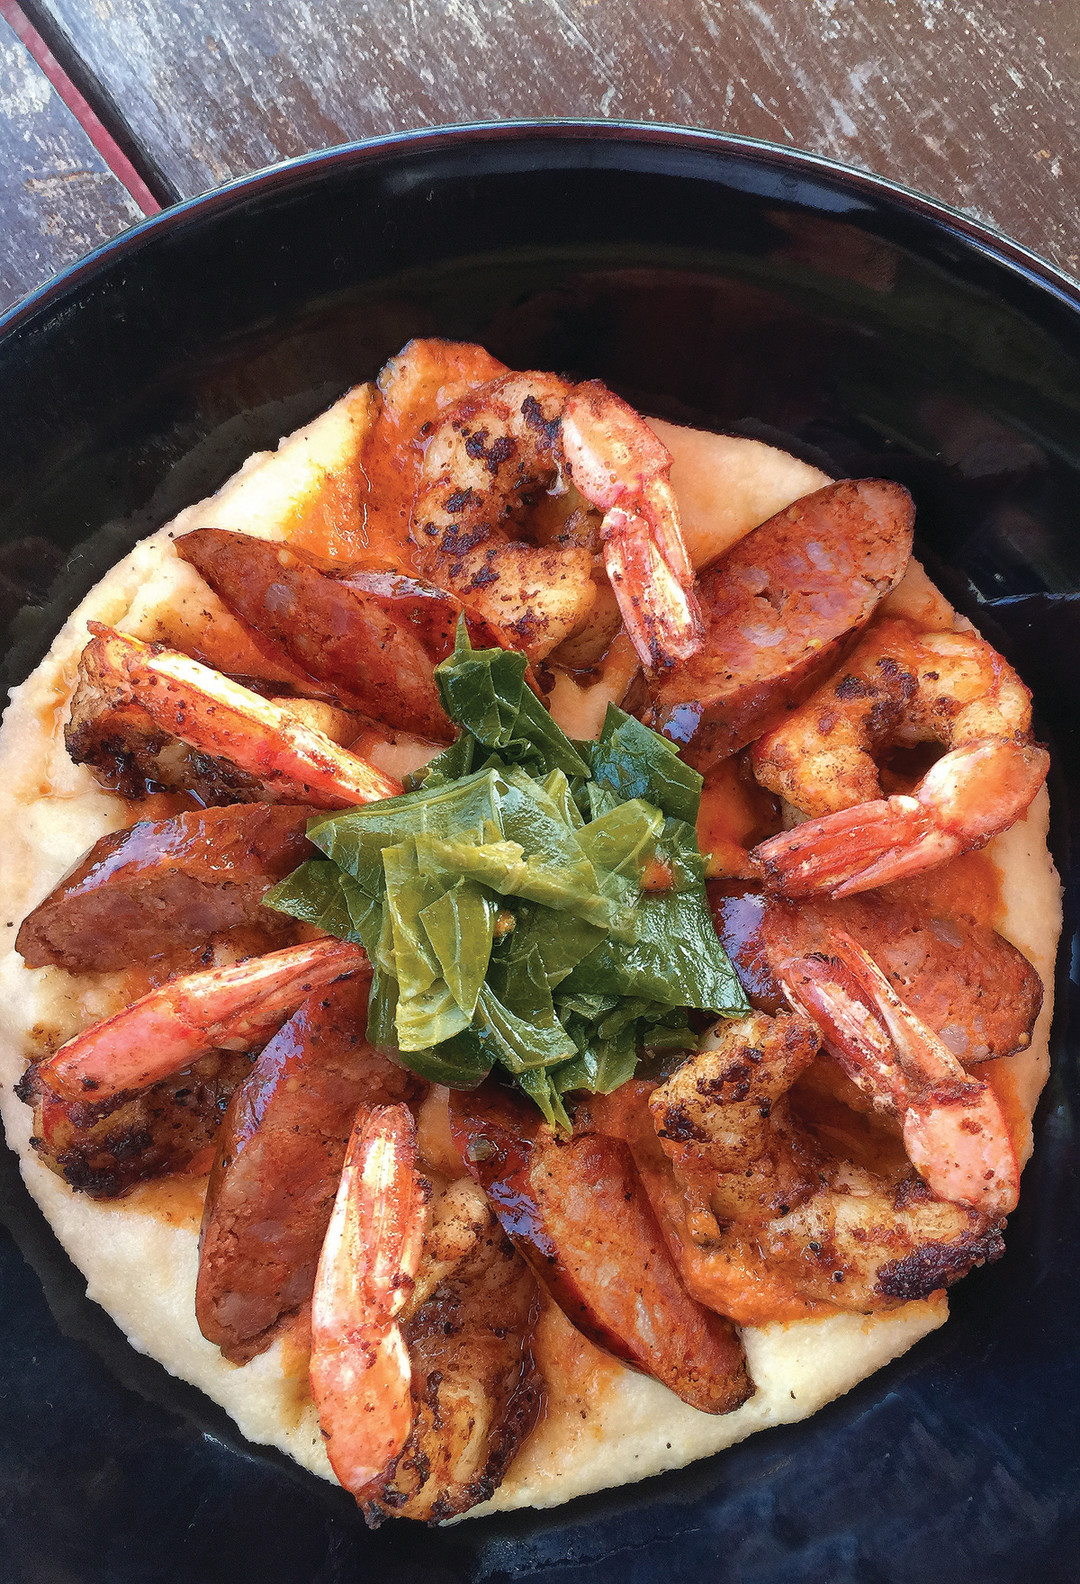 Shrimp grits for sarasota mag ykufj0